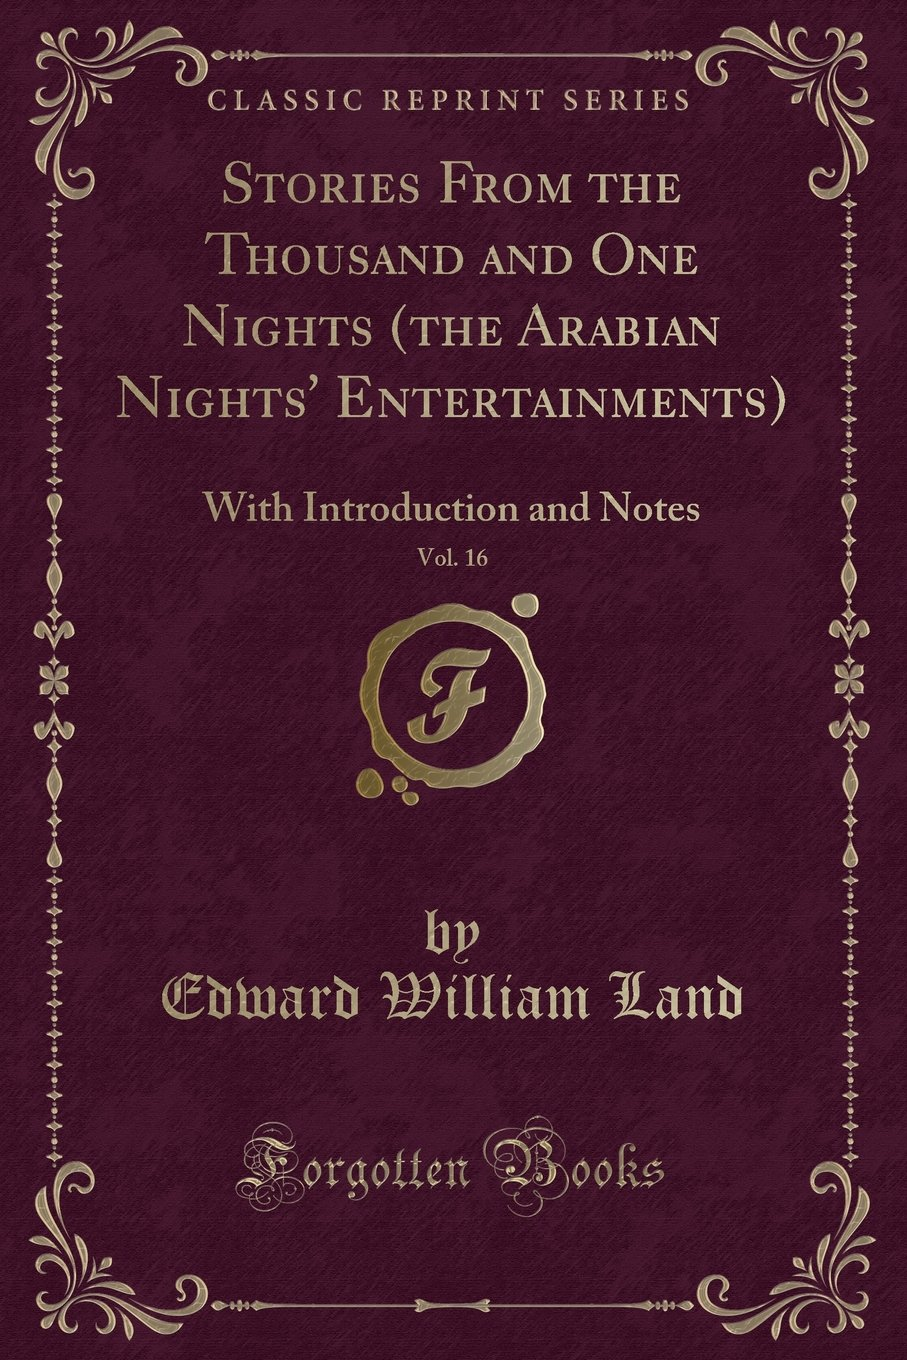 Stories From the Thousand and One Nights (the Arabian Nights' Entertainments), Vol. 16: With Introduction and Notes (Classic Reprint) pdf epub